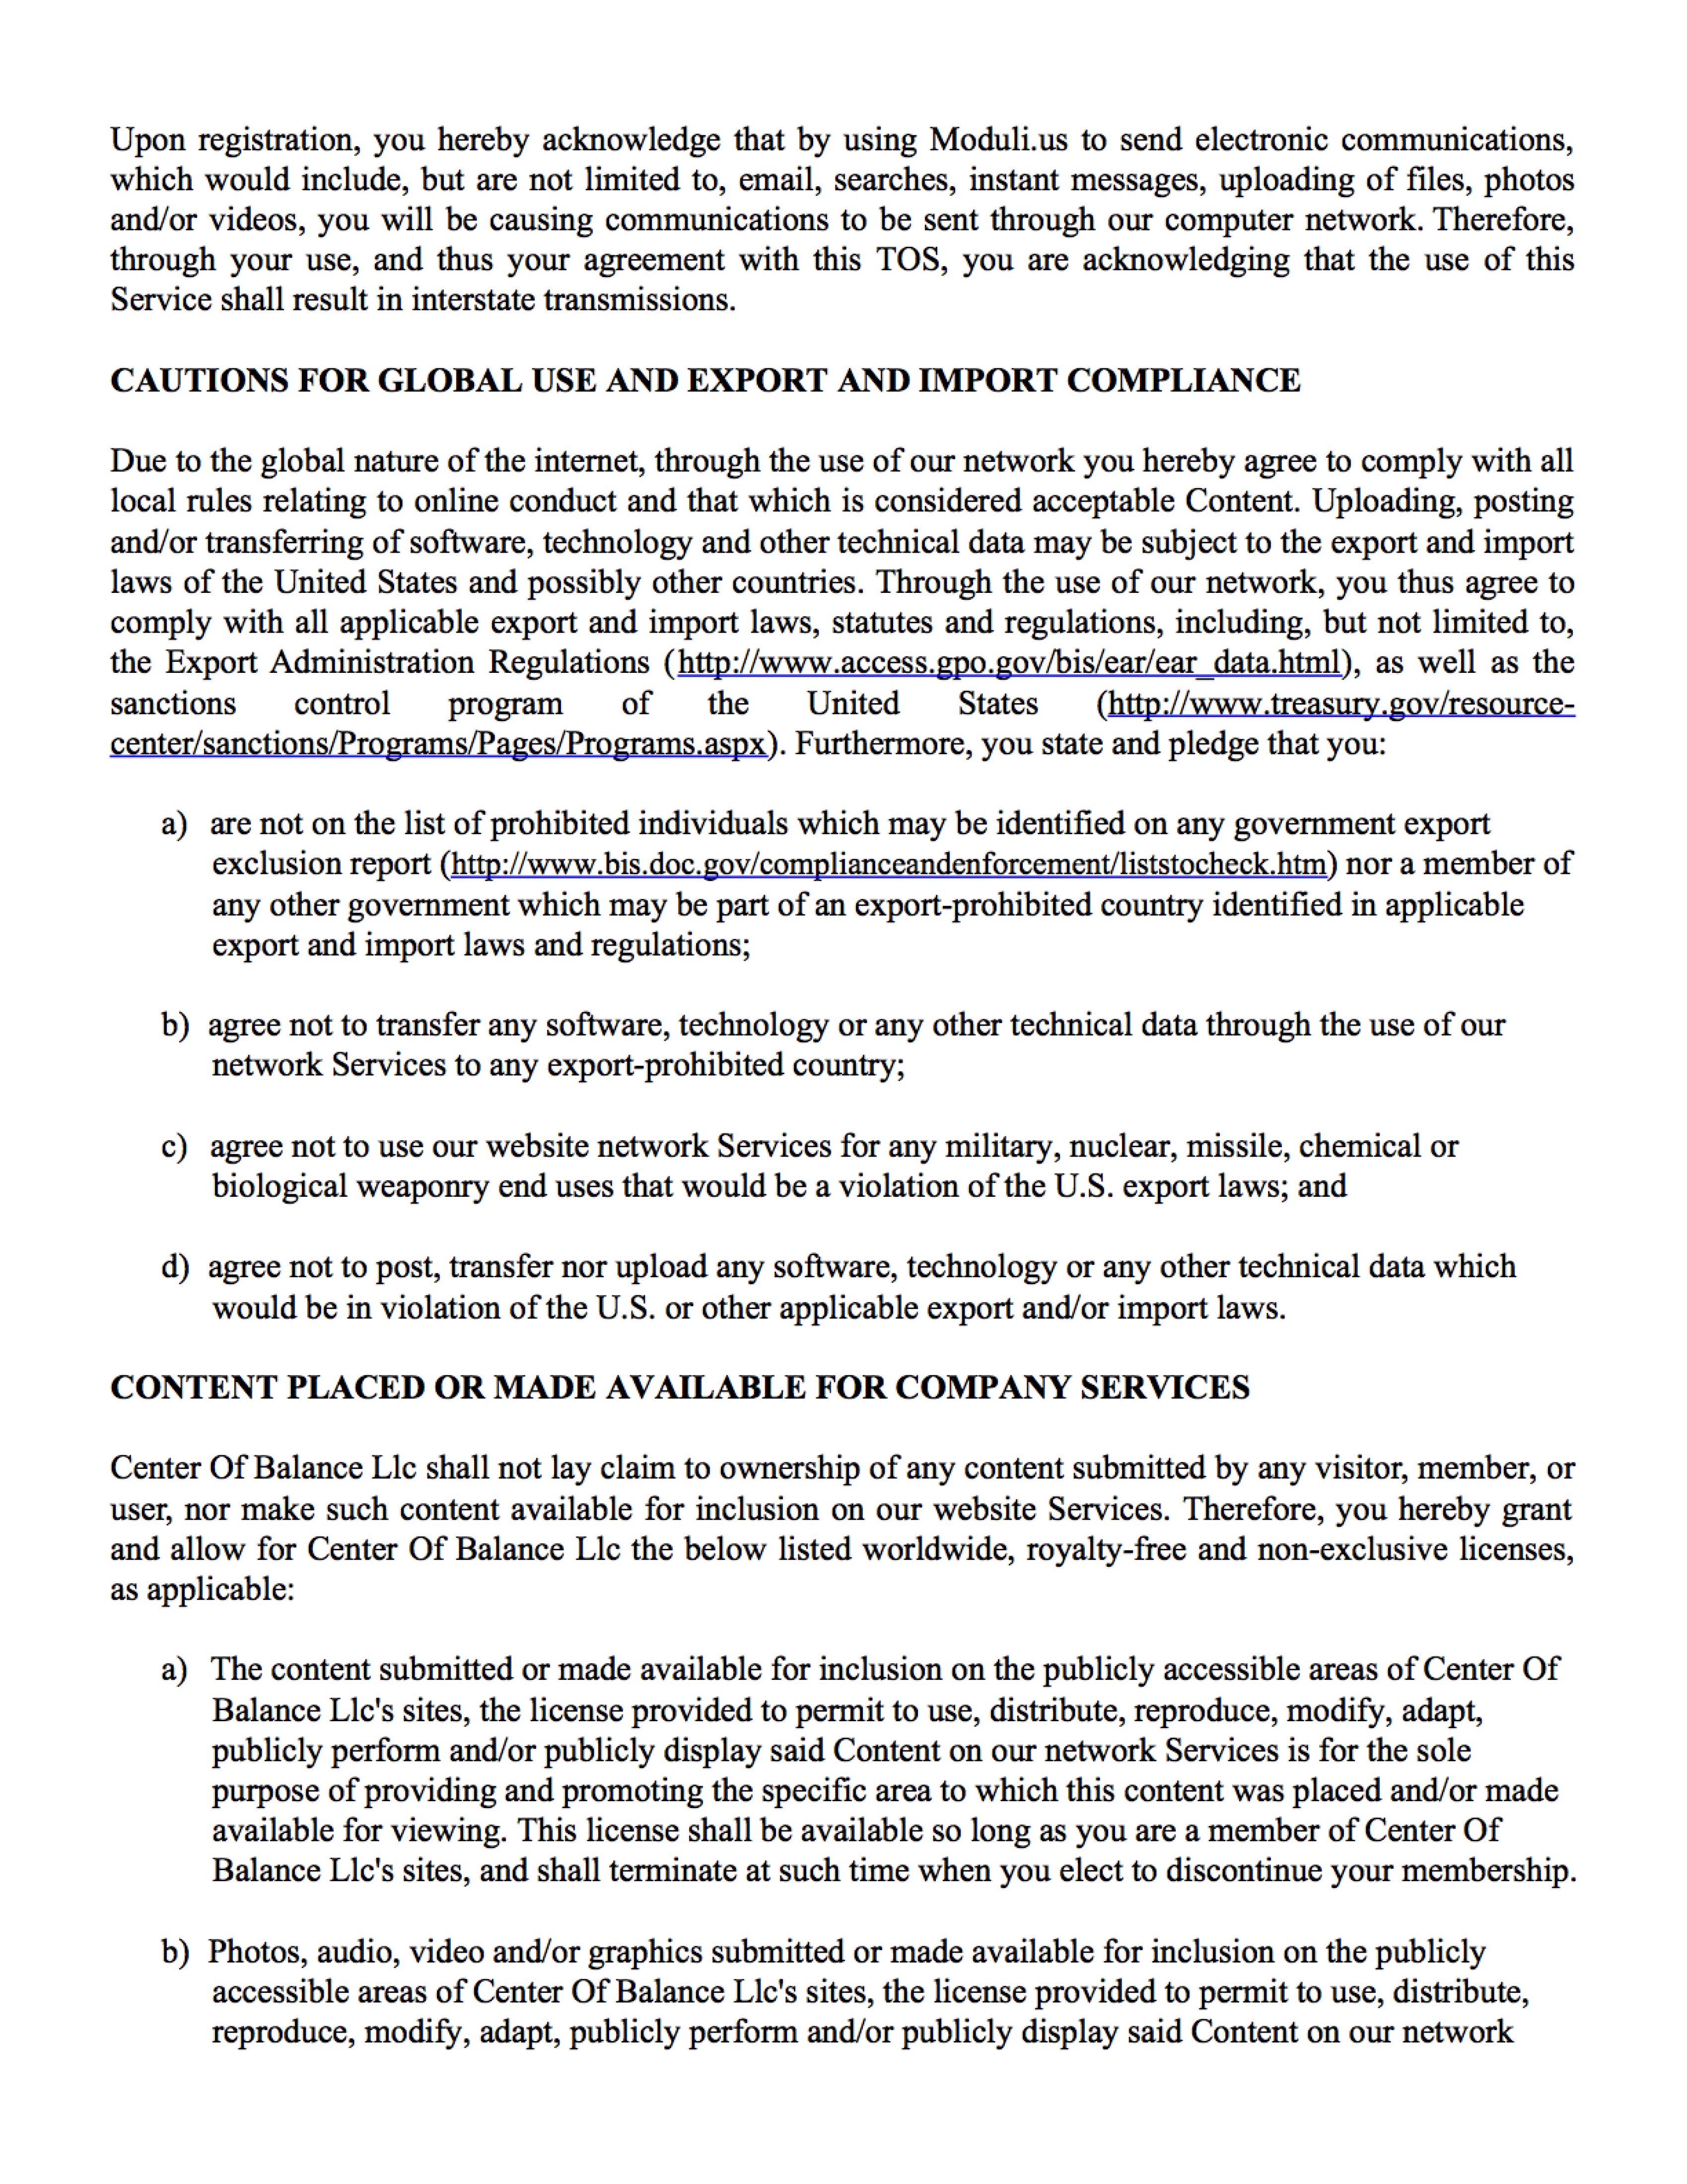 terms-and-conditions-b-page-05.png